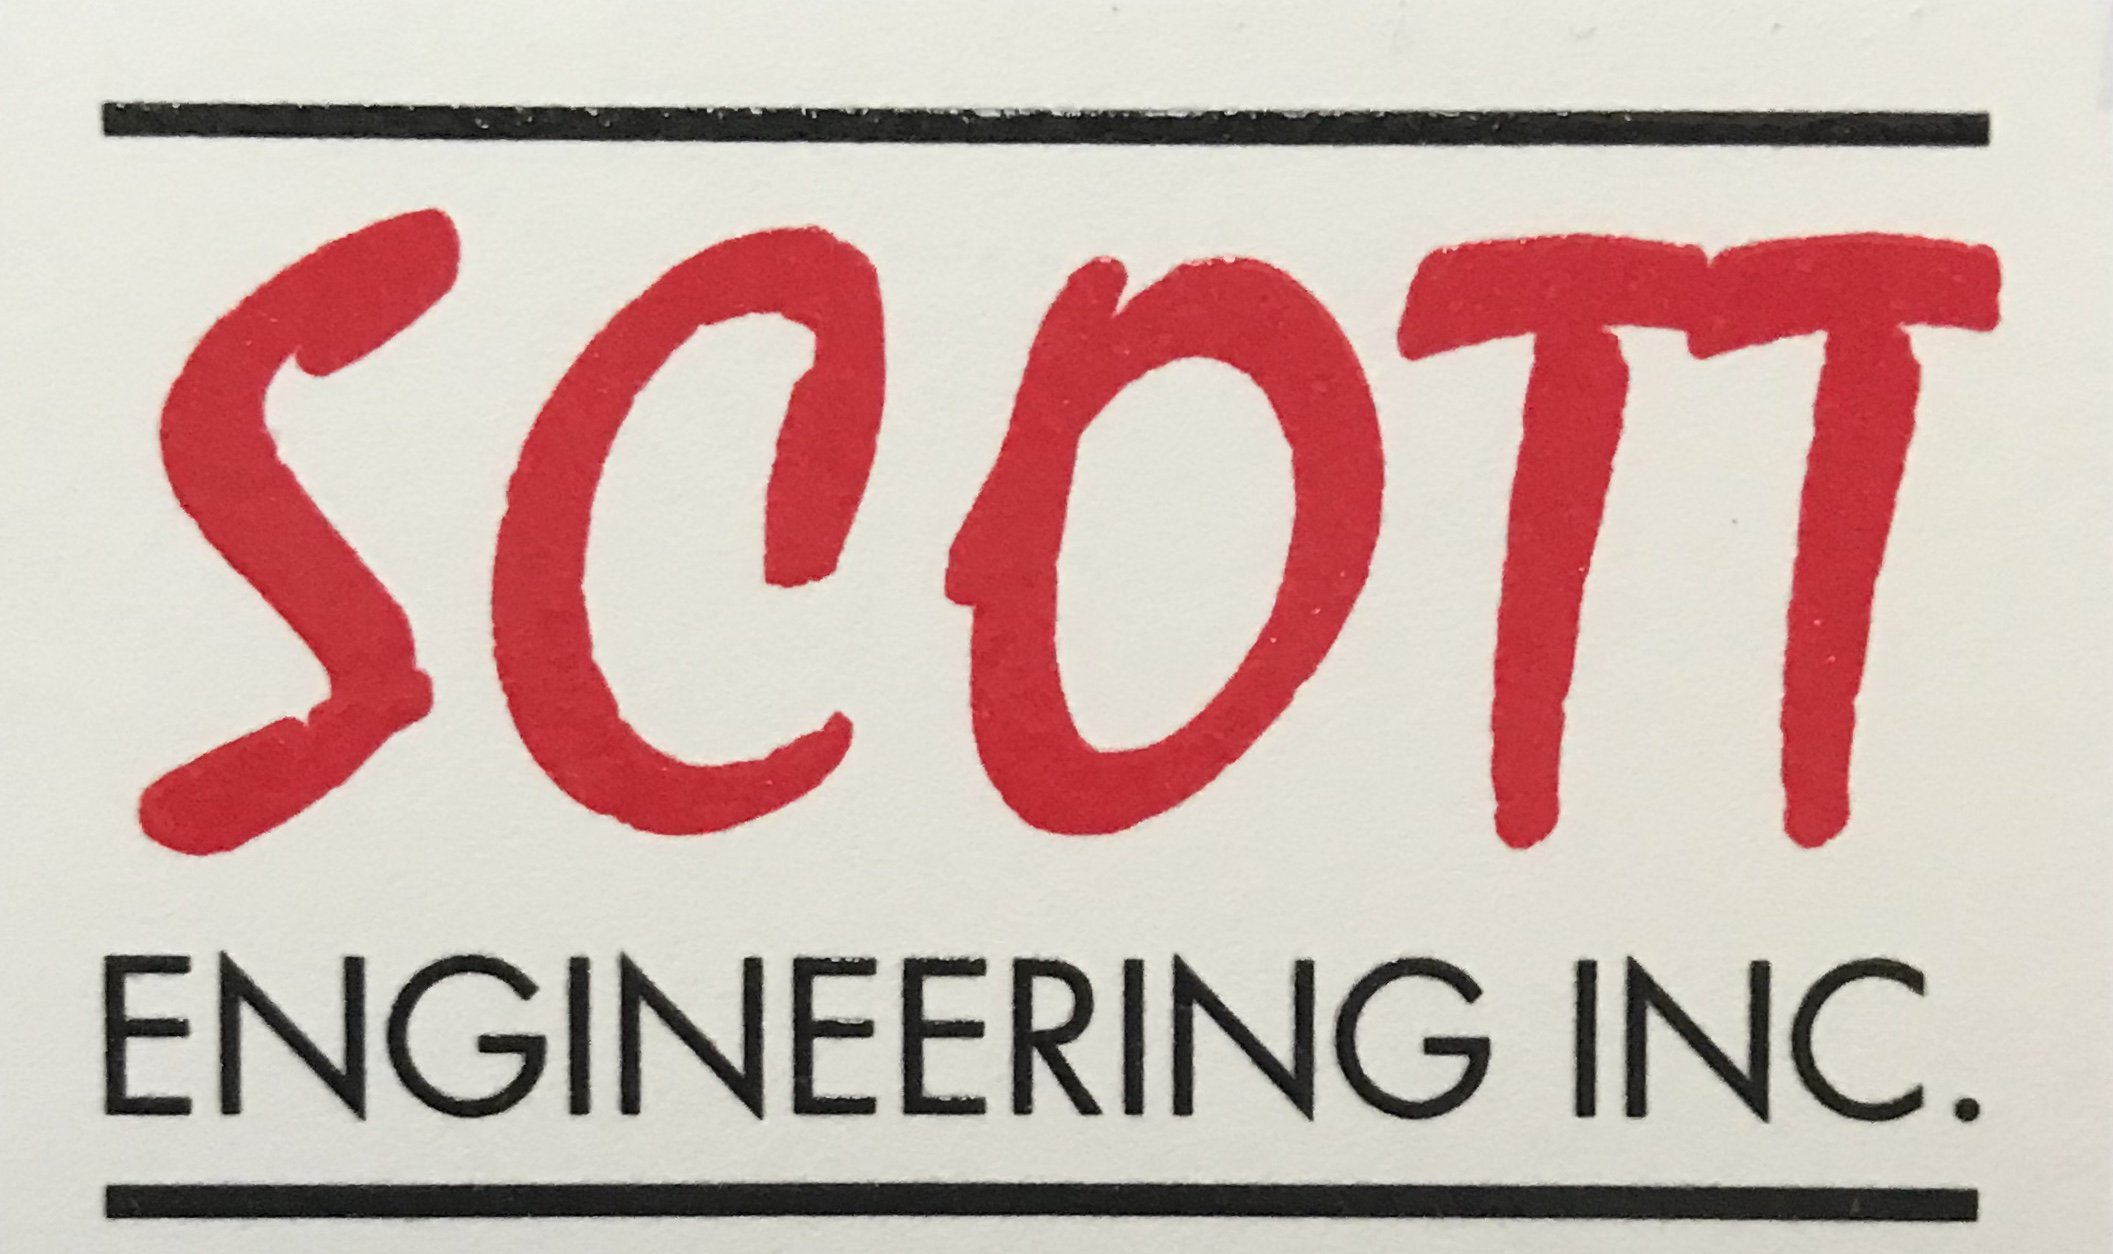 Scott Engineering Inc.